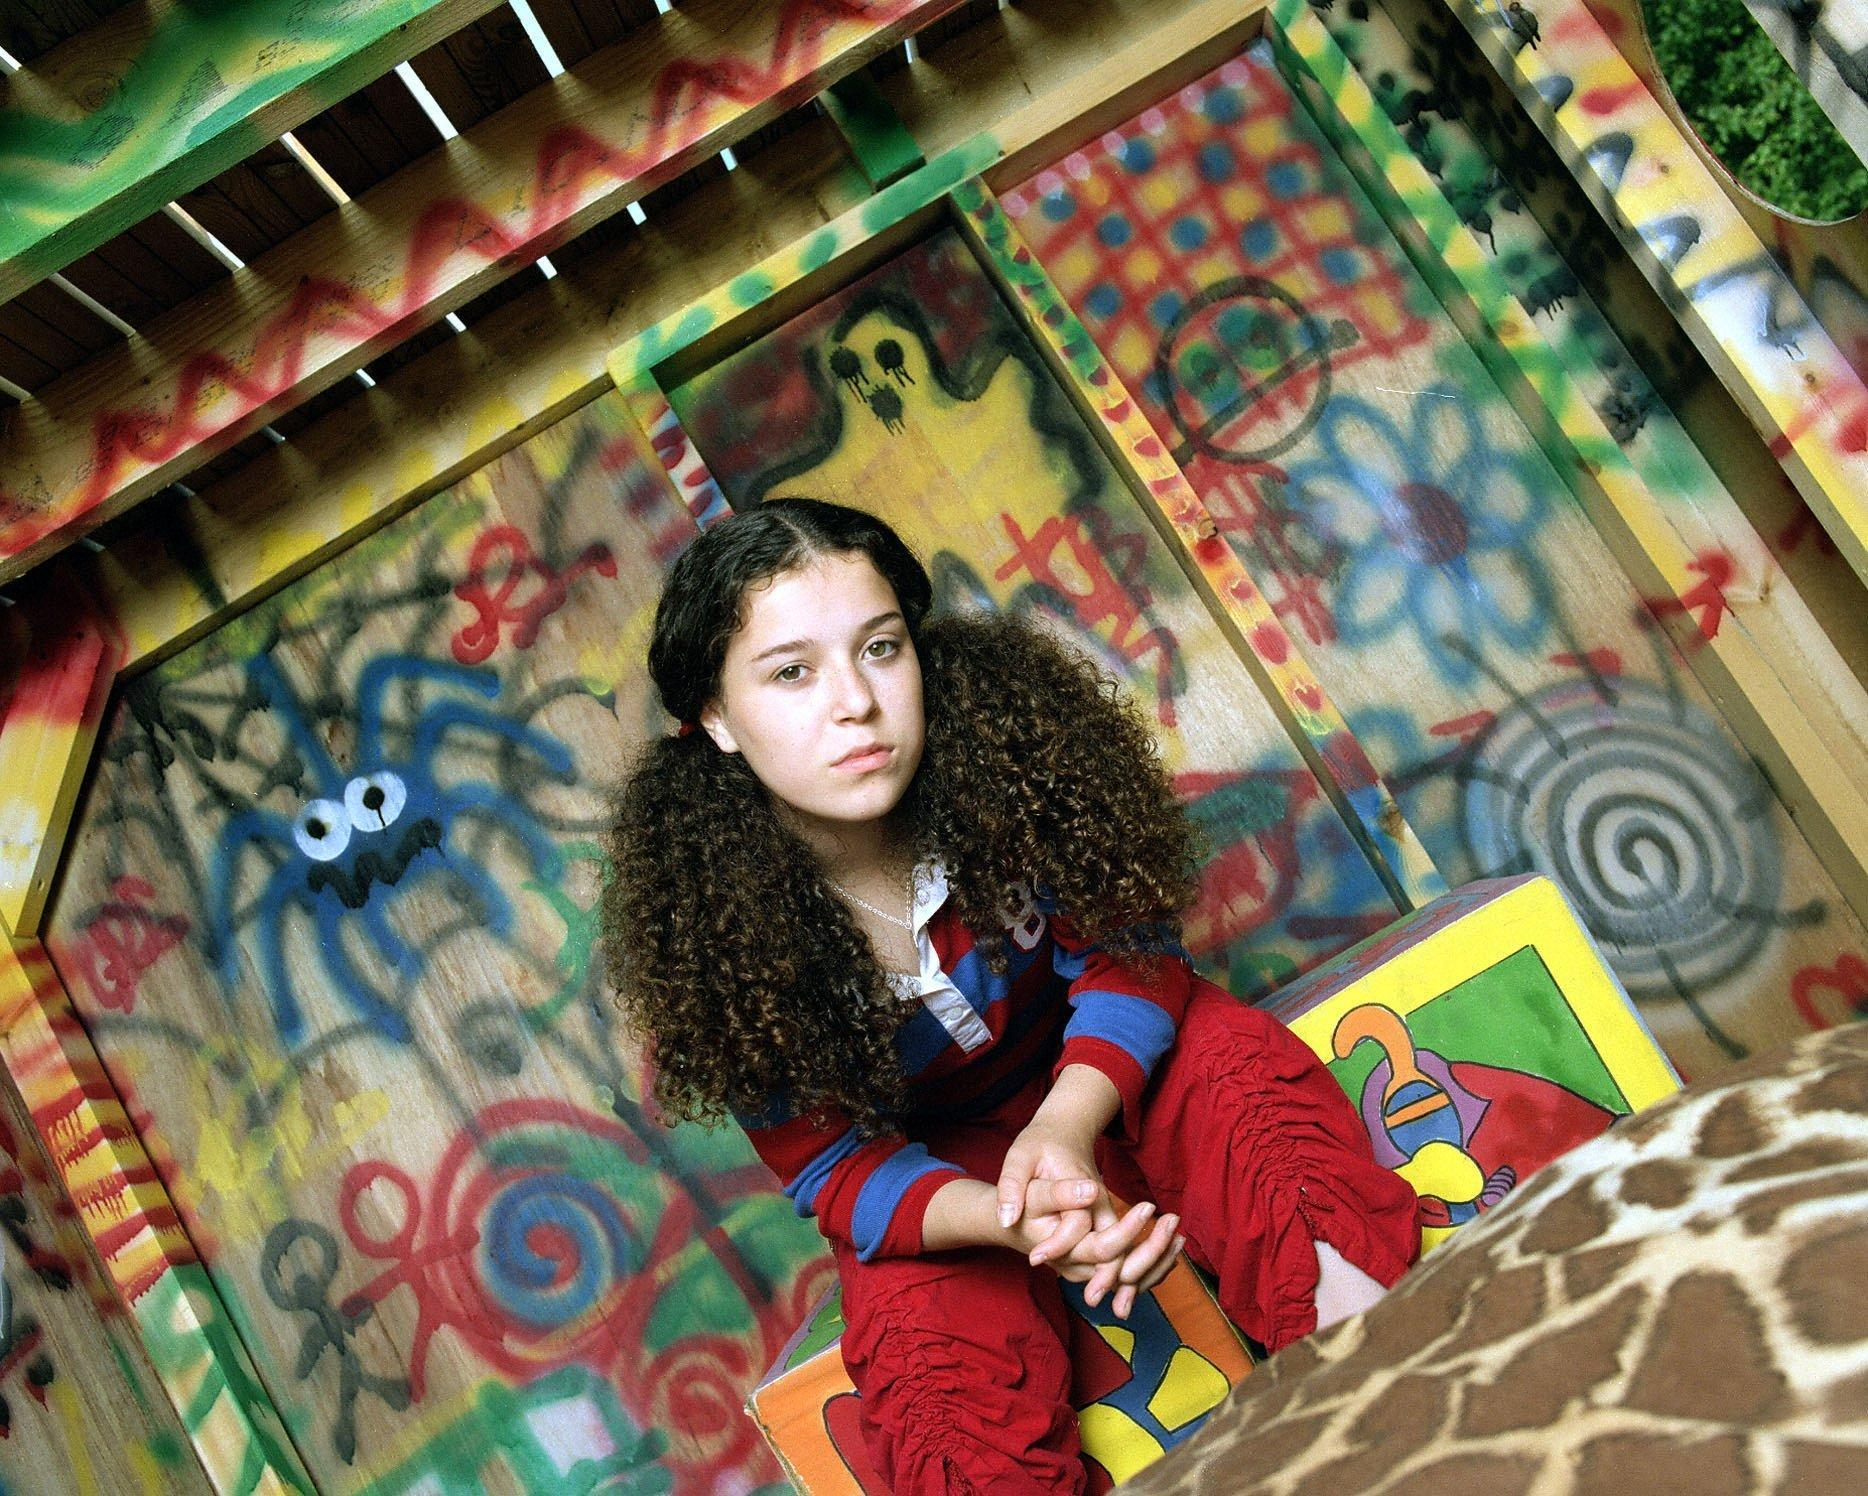 Tracy Beaker is back after 27 years and now she's a single mum on a rough council estate